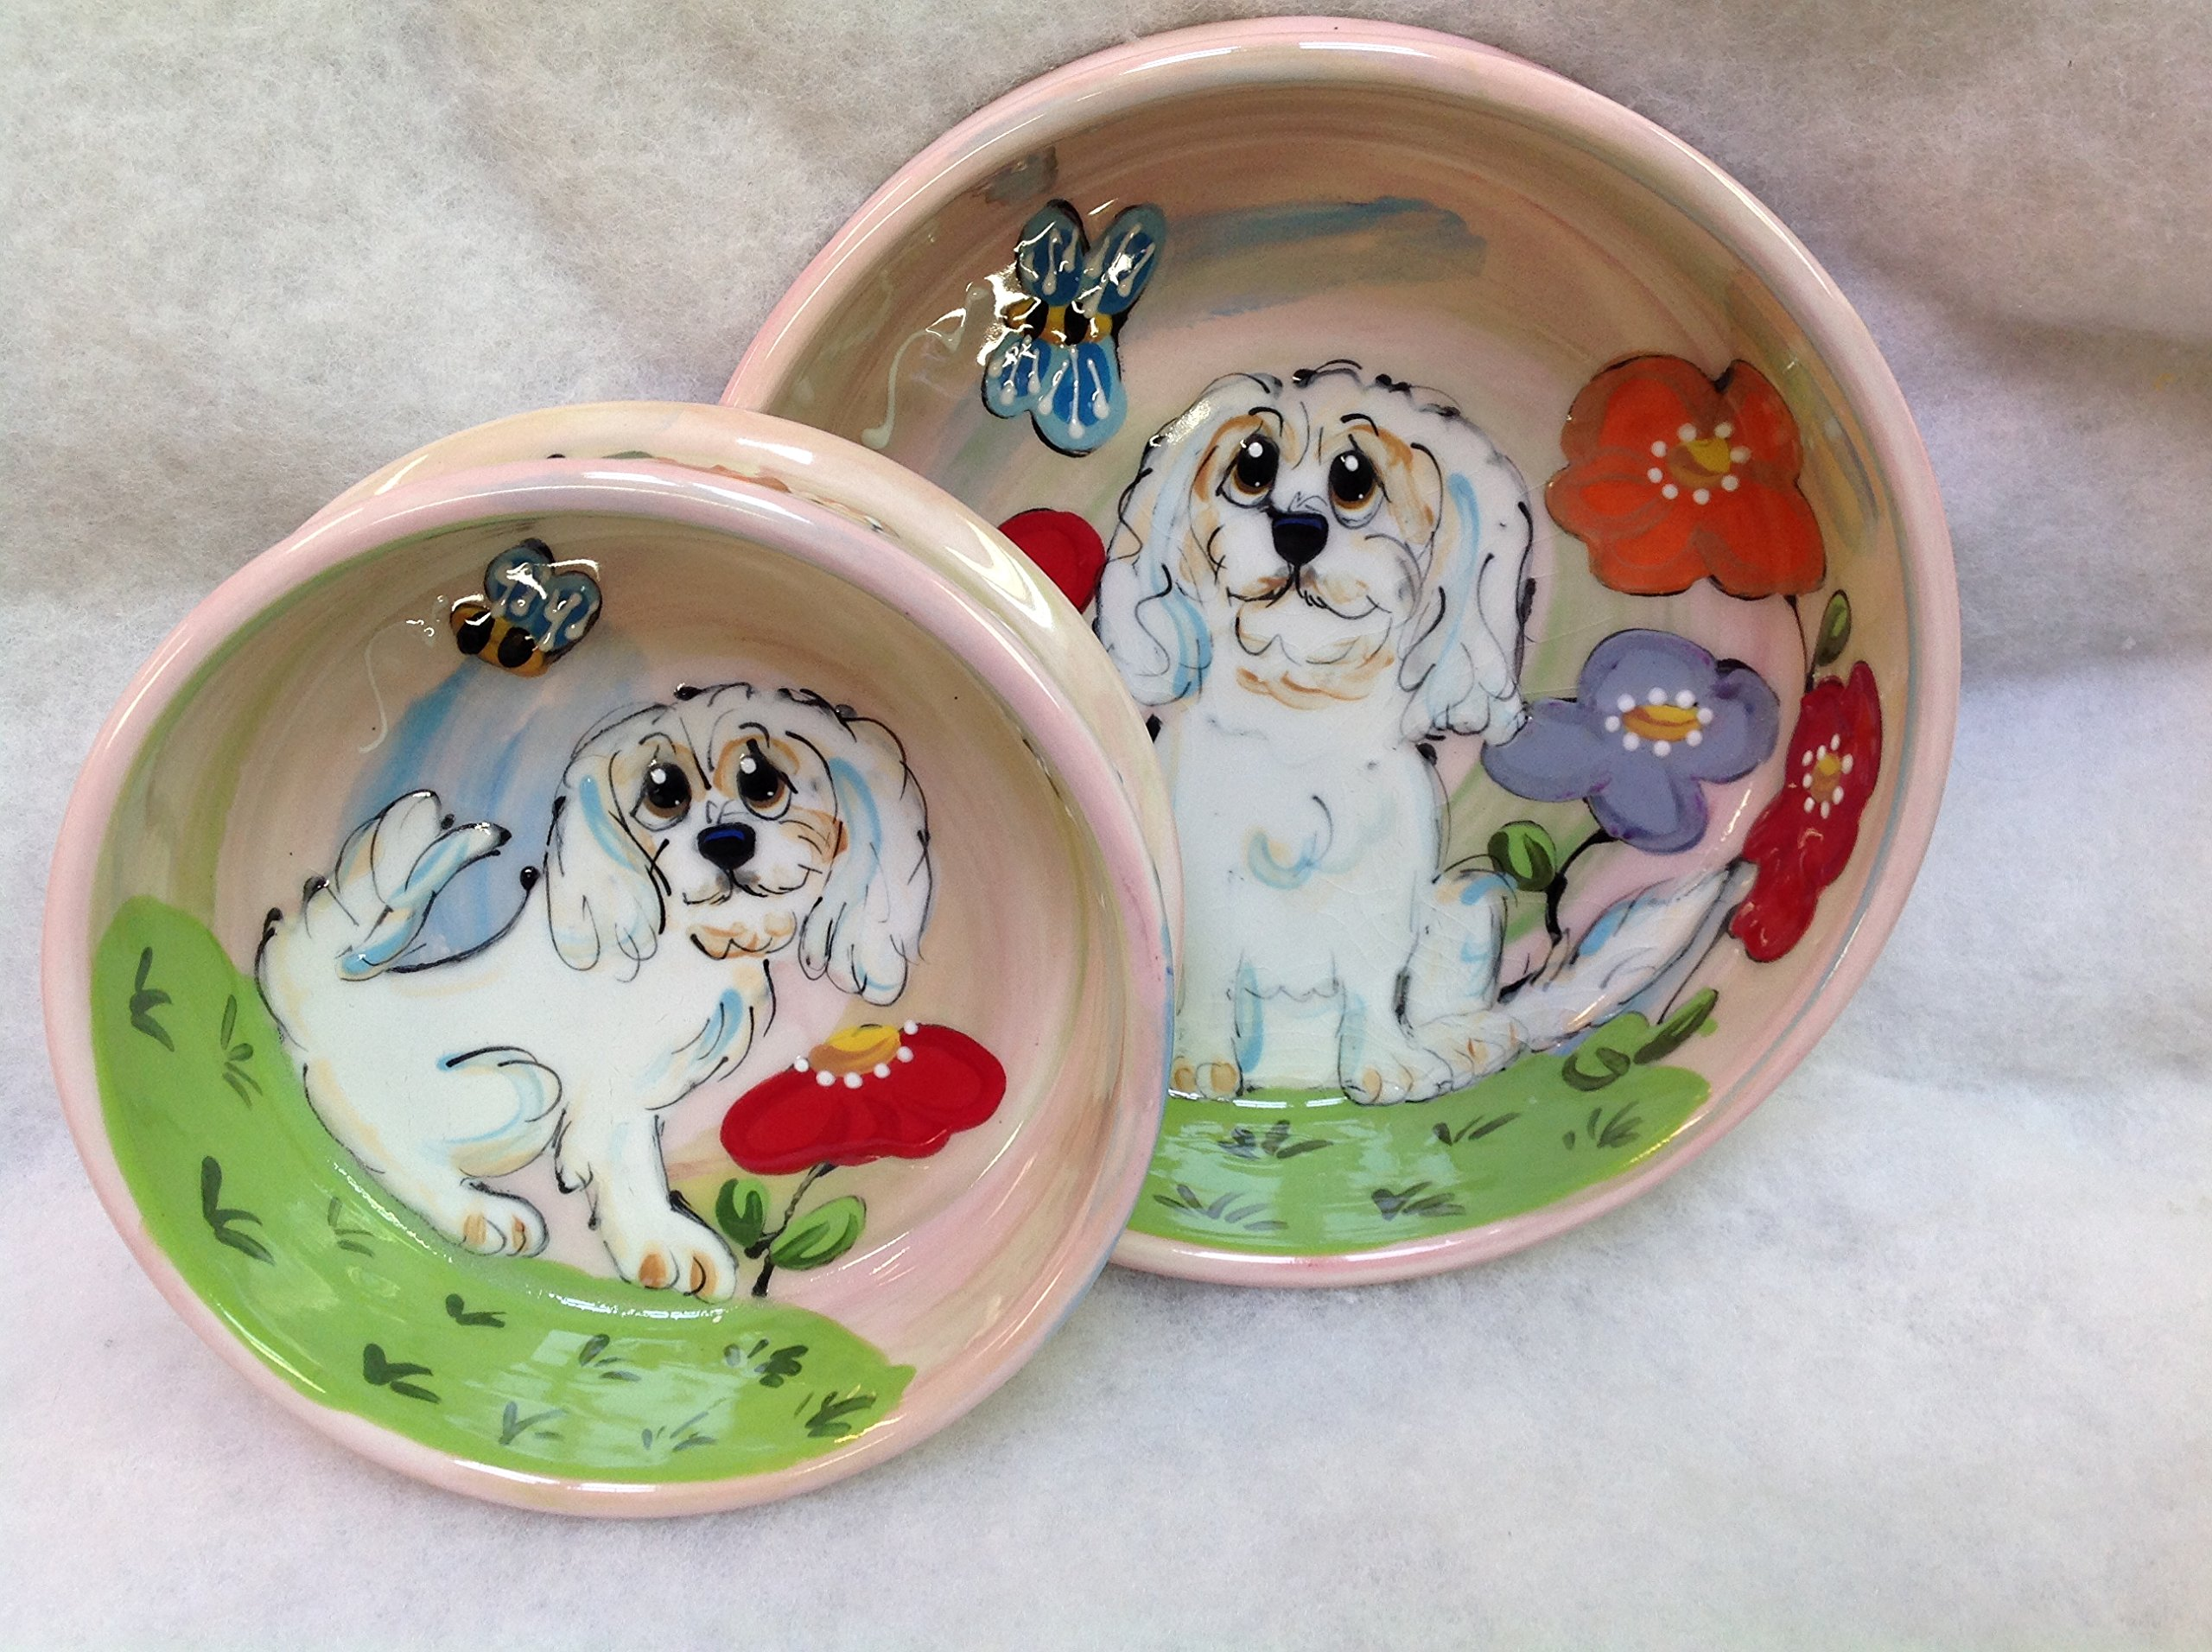 Lhaso Apso 8'' and 6'' Pet Bowls for Food and Water, Personalized at no Charge. Signed by Artist, Debby Carman.